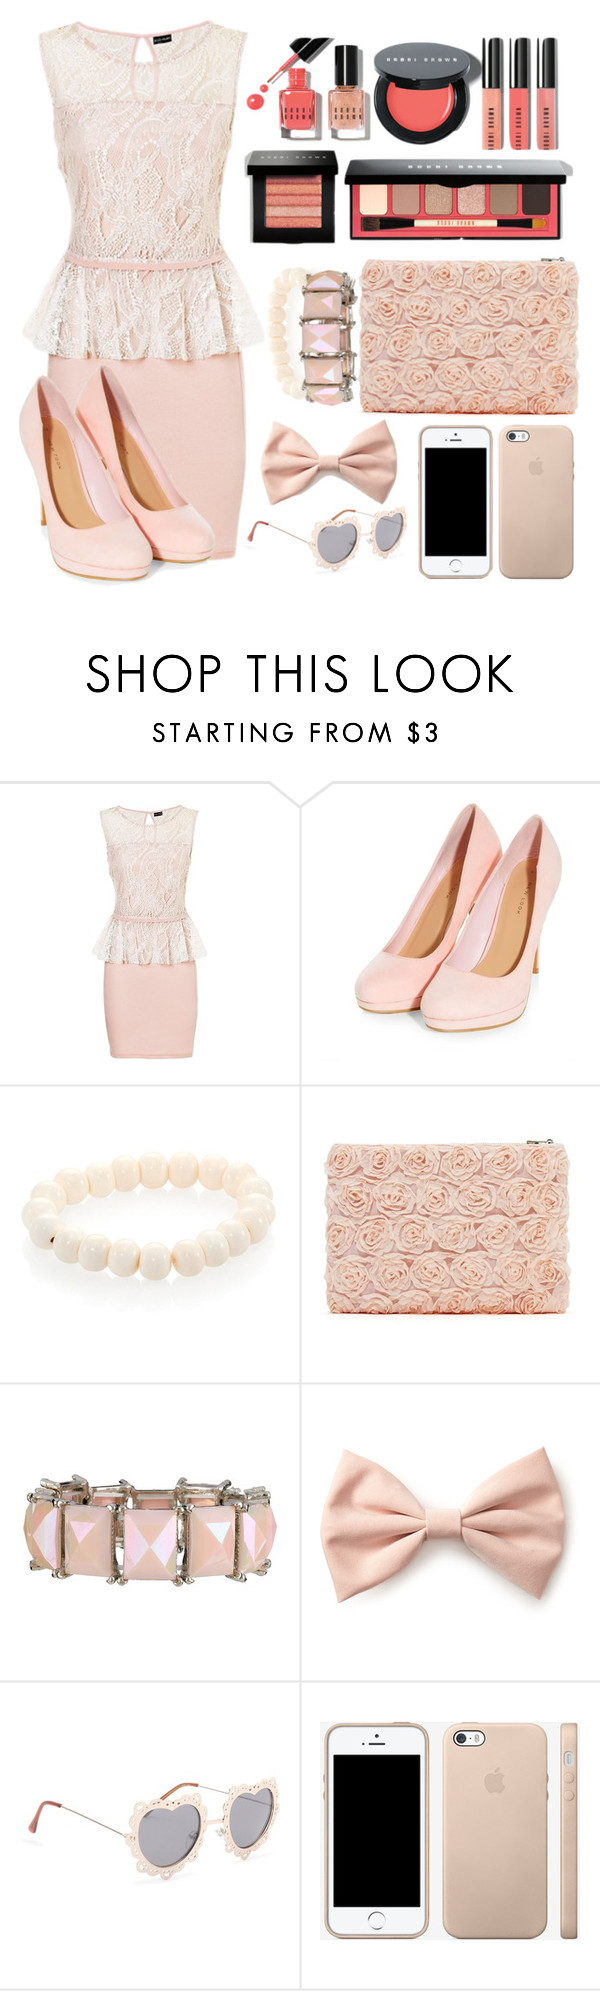 """""""Soft Pink"""" by foreverdreamt ❤ liked on Polyvore featuring Bobbi Brown Cosmetics, Nest, Forever 21, With Love From CA and Pink"""